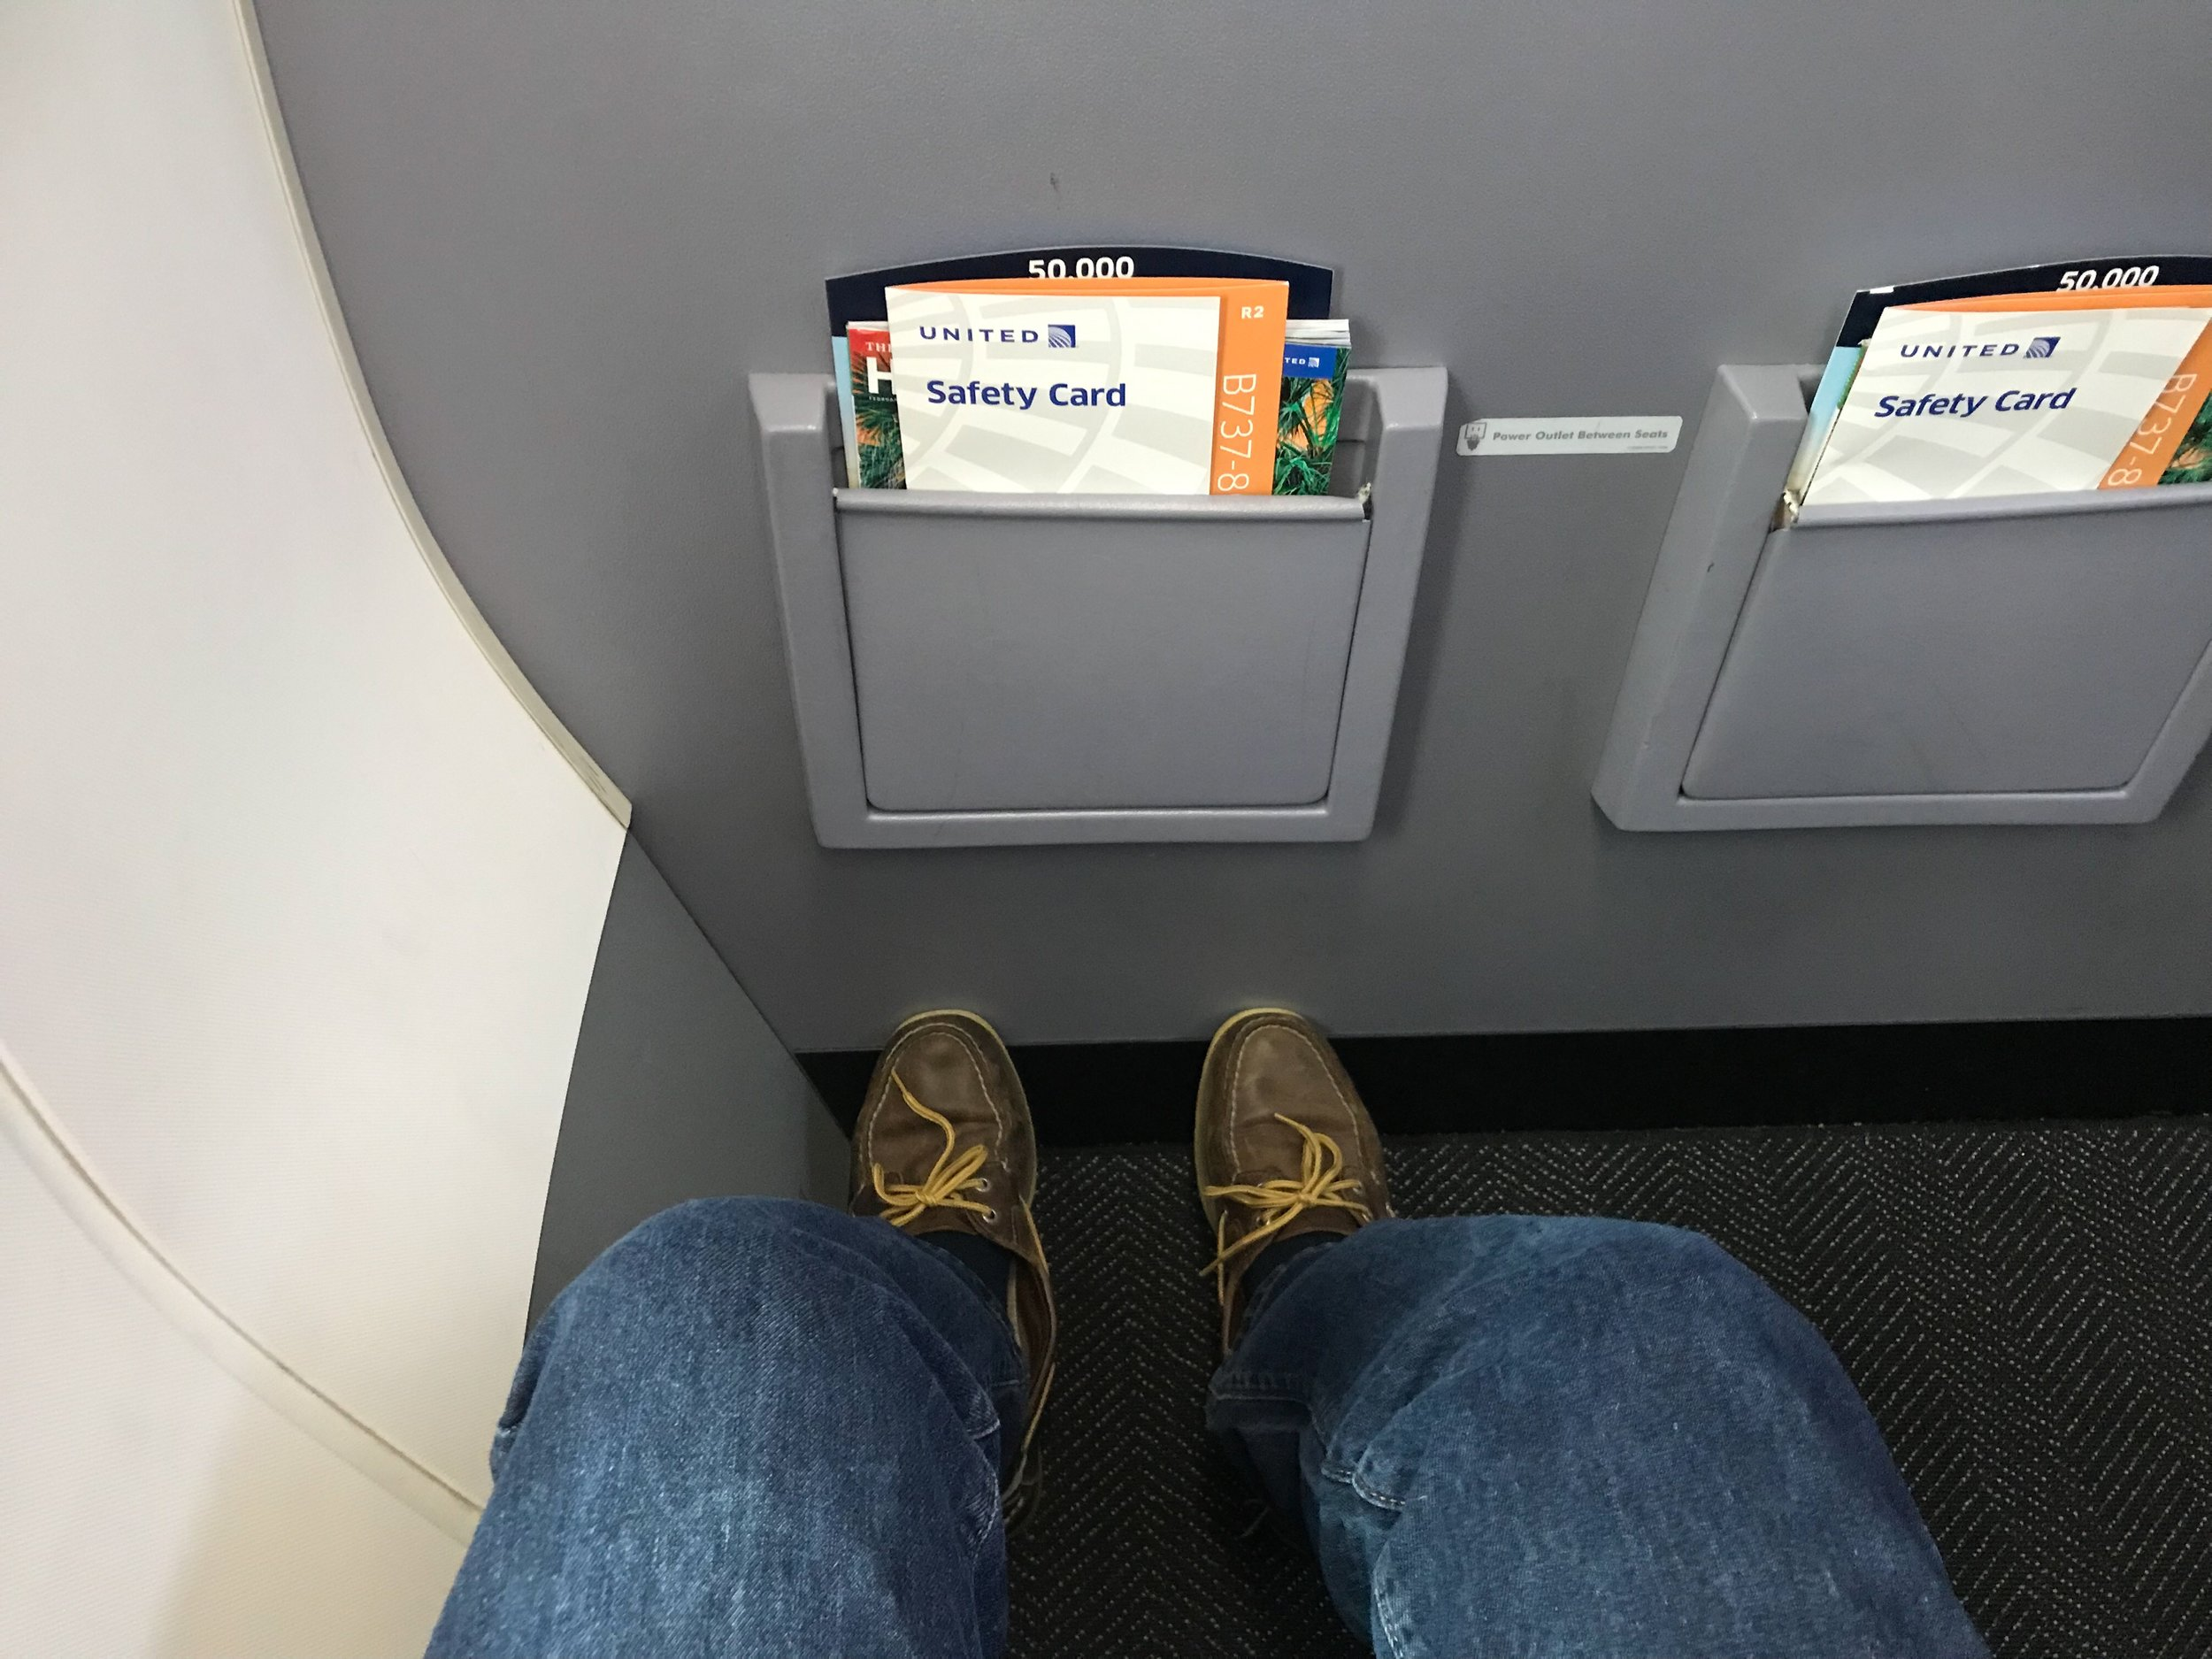 I couldn't stretch my legs as much as in other Economy Plus rows, but there was more space overall.